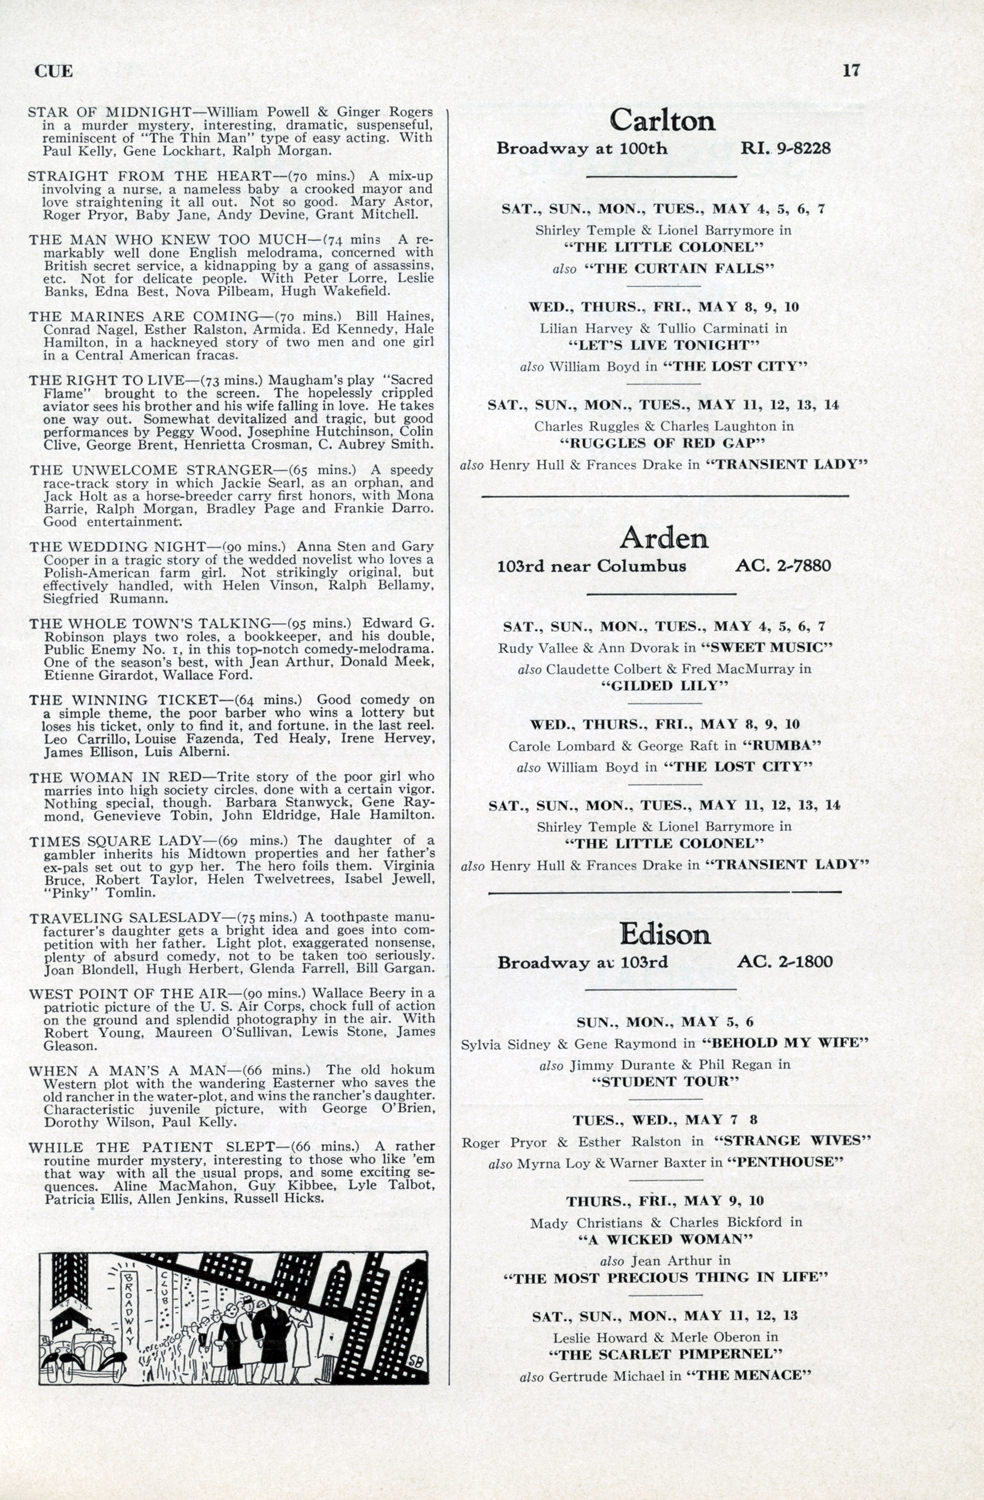 May 4, 1935, Pg. 16 INSIDE  CUE : Movie Listings and Minute Critiques